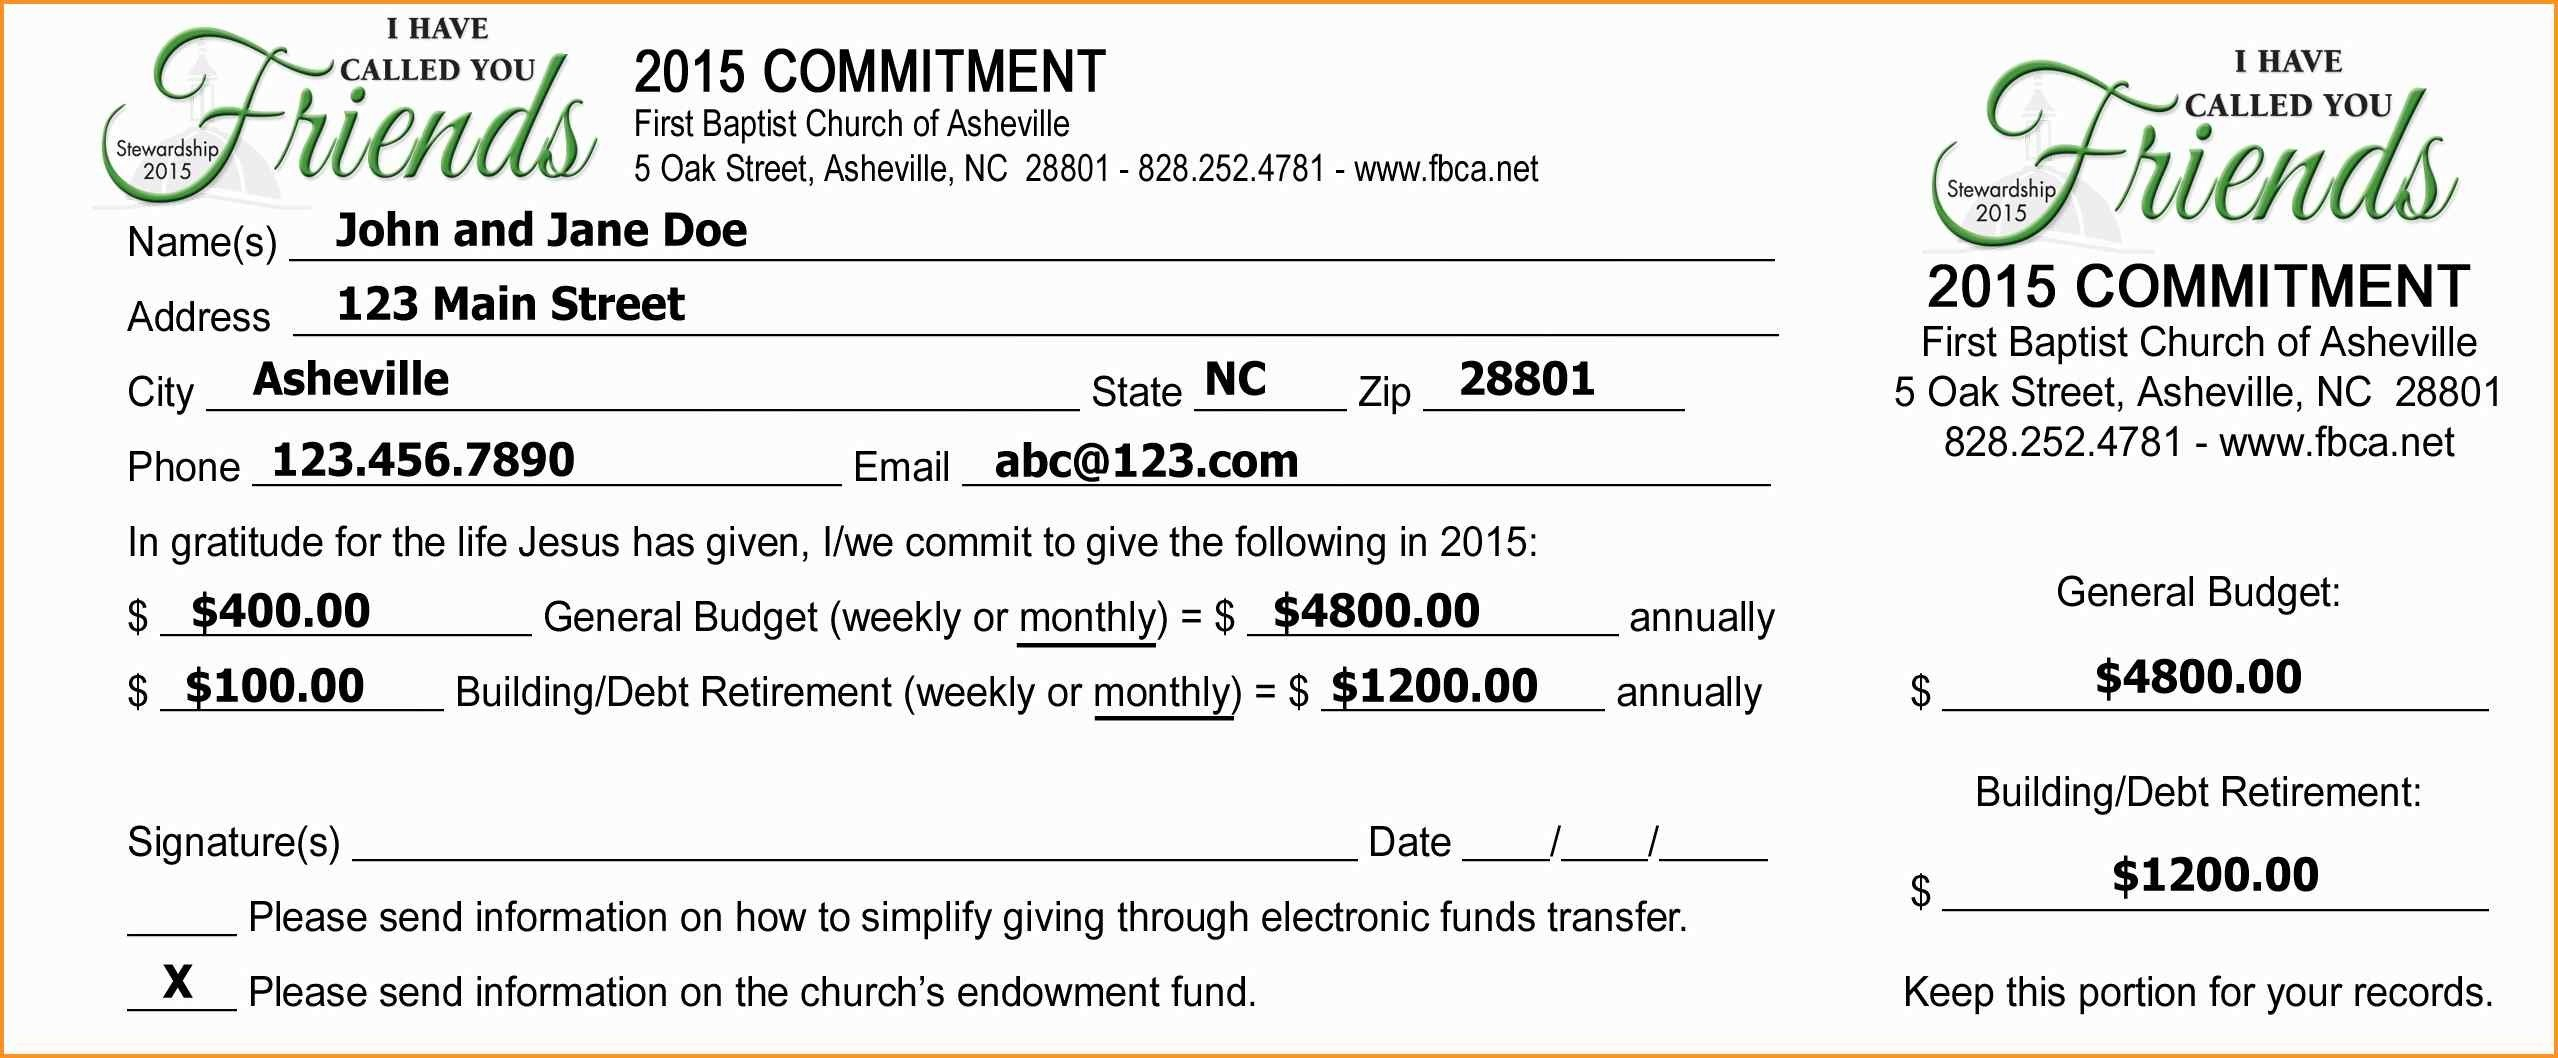 Pledge Cards Template Free Card Donation Excel Templates For Church Pertaining To Fundraising Pledge Card Template